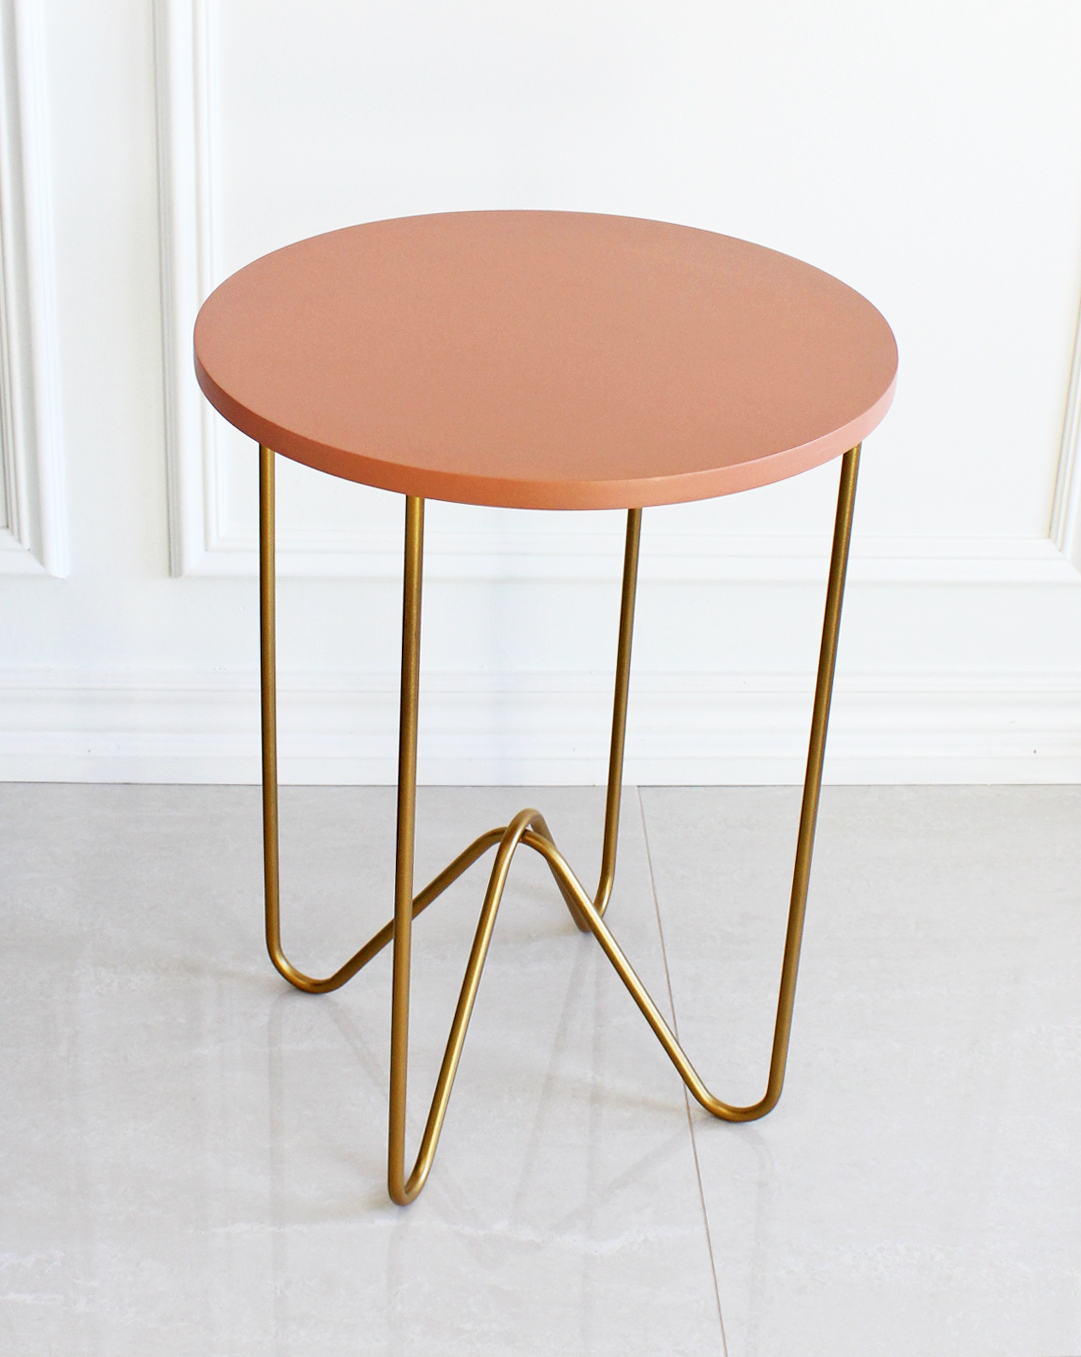 dolce vita style marble tulip side table nate berkus target round gold peach accent with top and this from the spring collection having second thoughts about colored tabletop